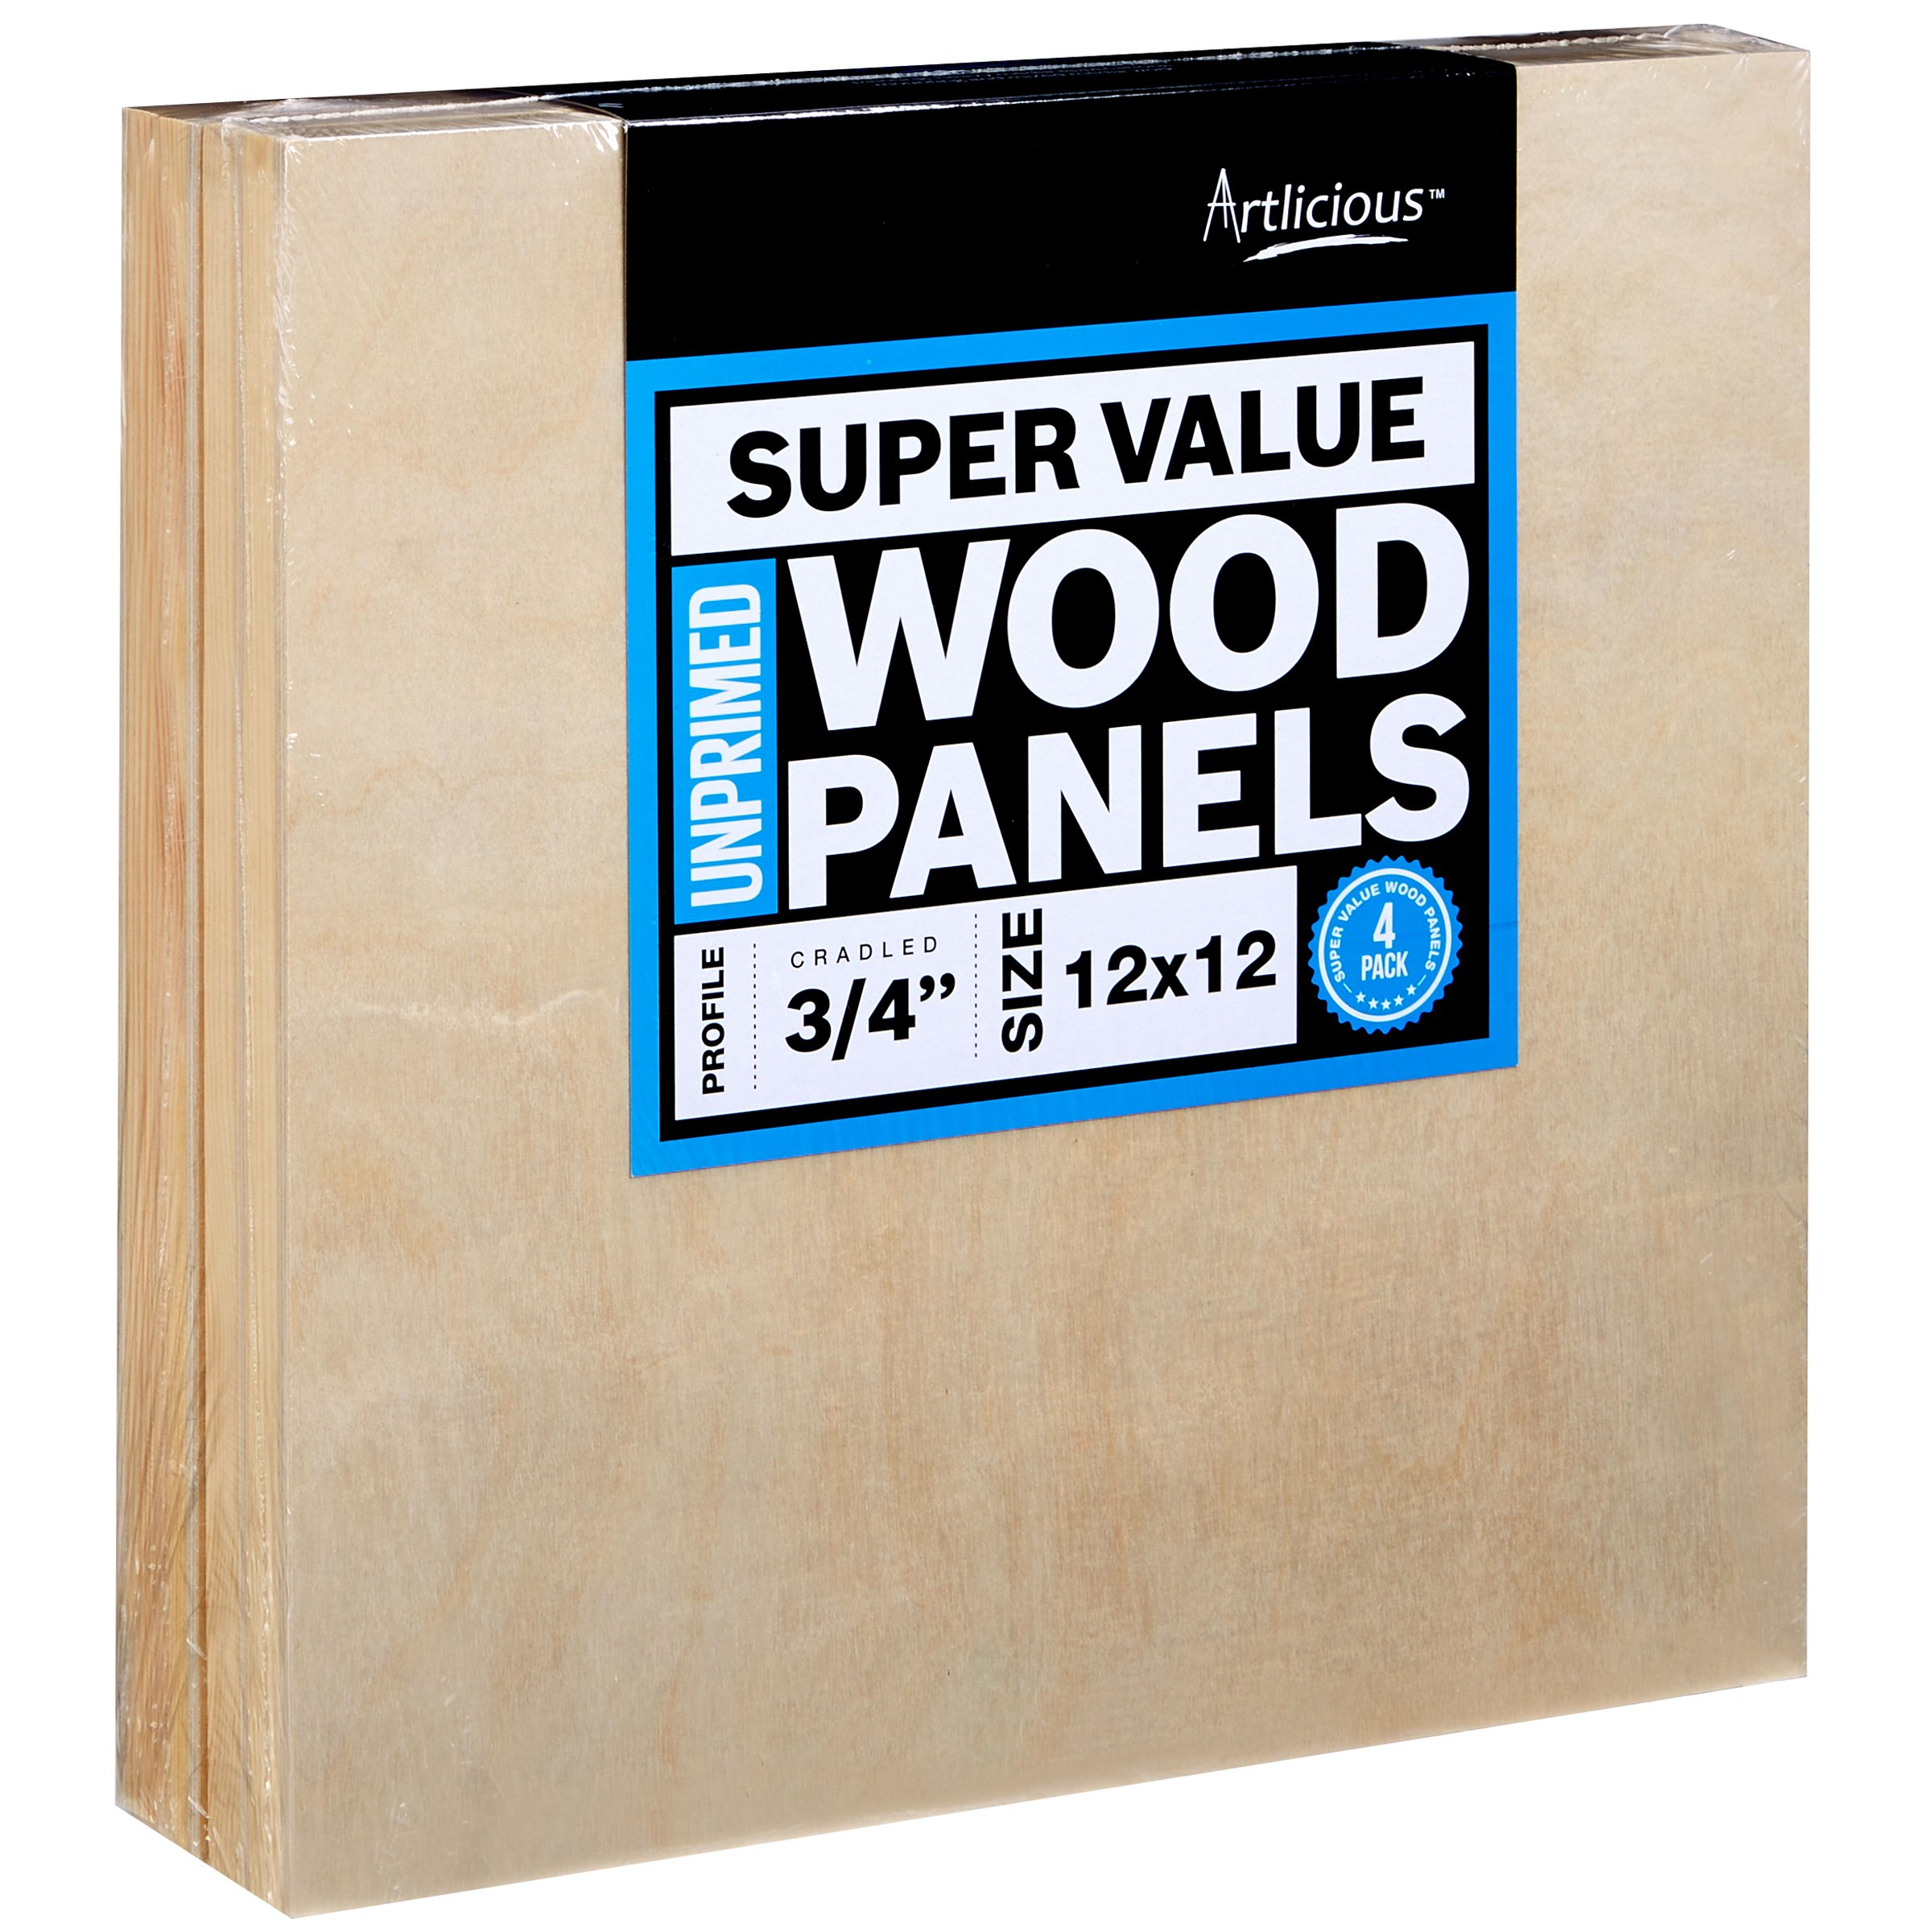 Artlicious - 4 Super Value Wood Panel Boards - Great Alternative to Canvas Panels, Stretched Canvas & Canvas Rolls (12x12, Standard Profile) by Artlicious